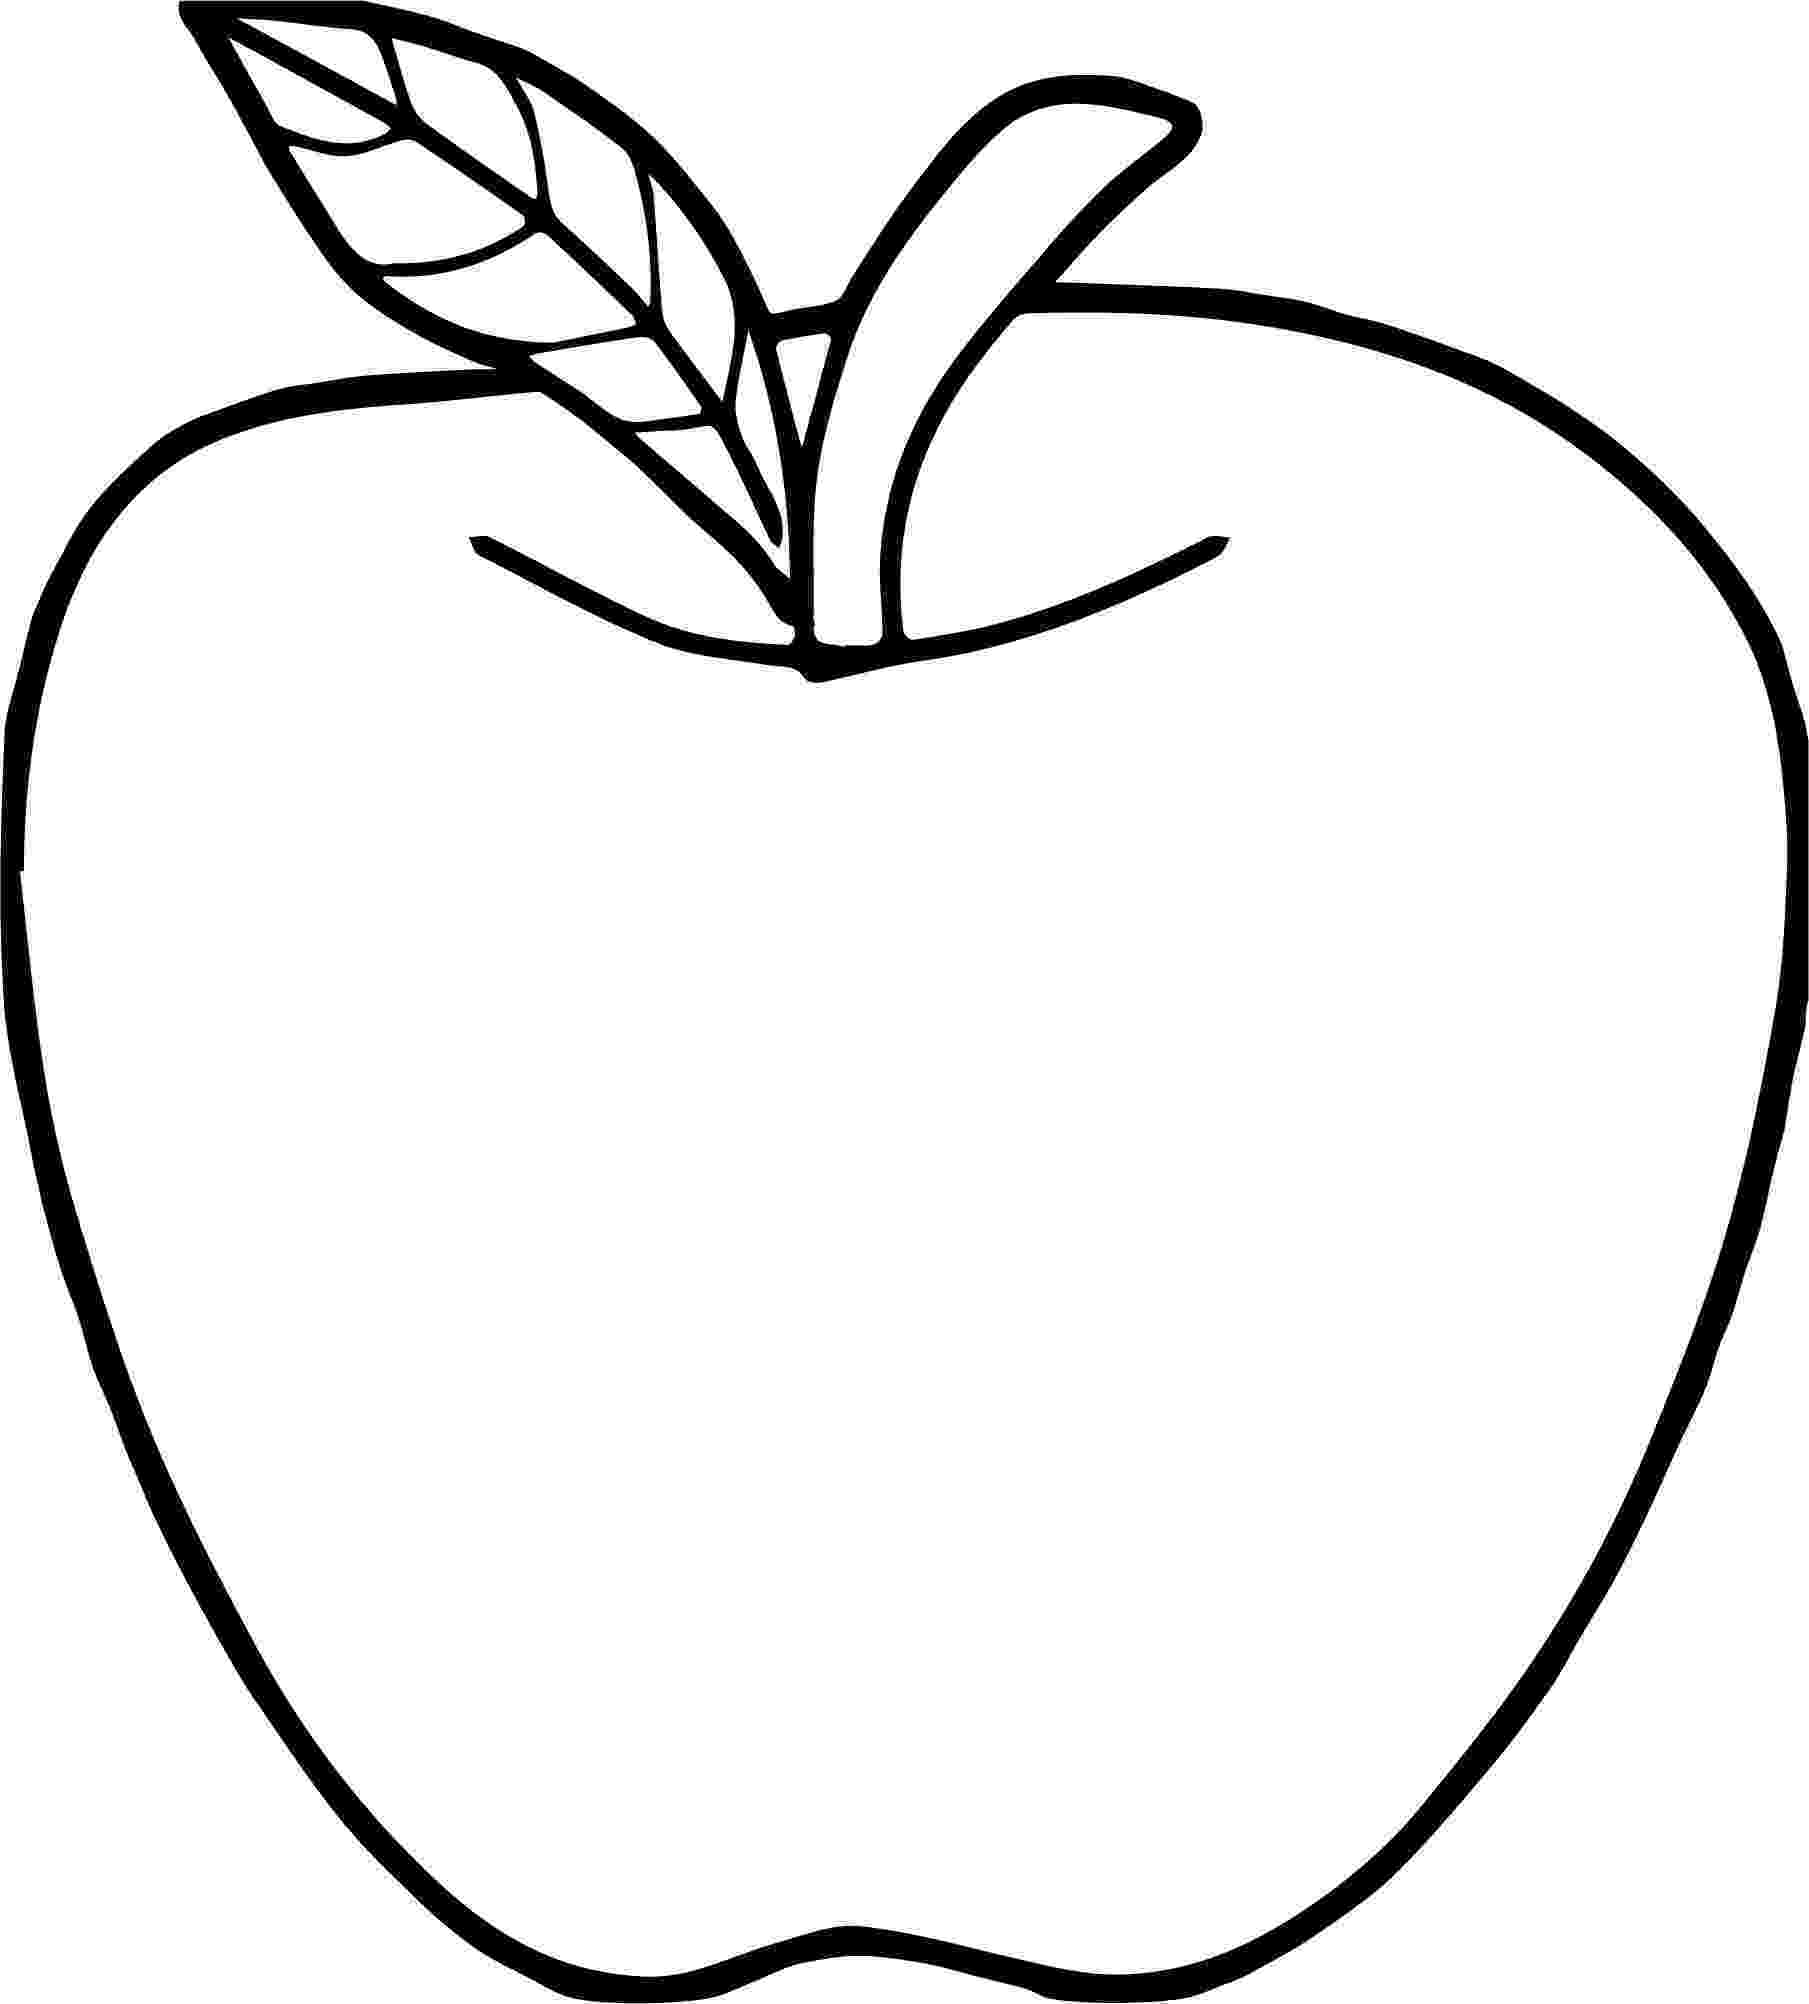 apple coloring picture good apple coloring page wecoloringpagecom coloring picture apple